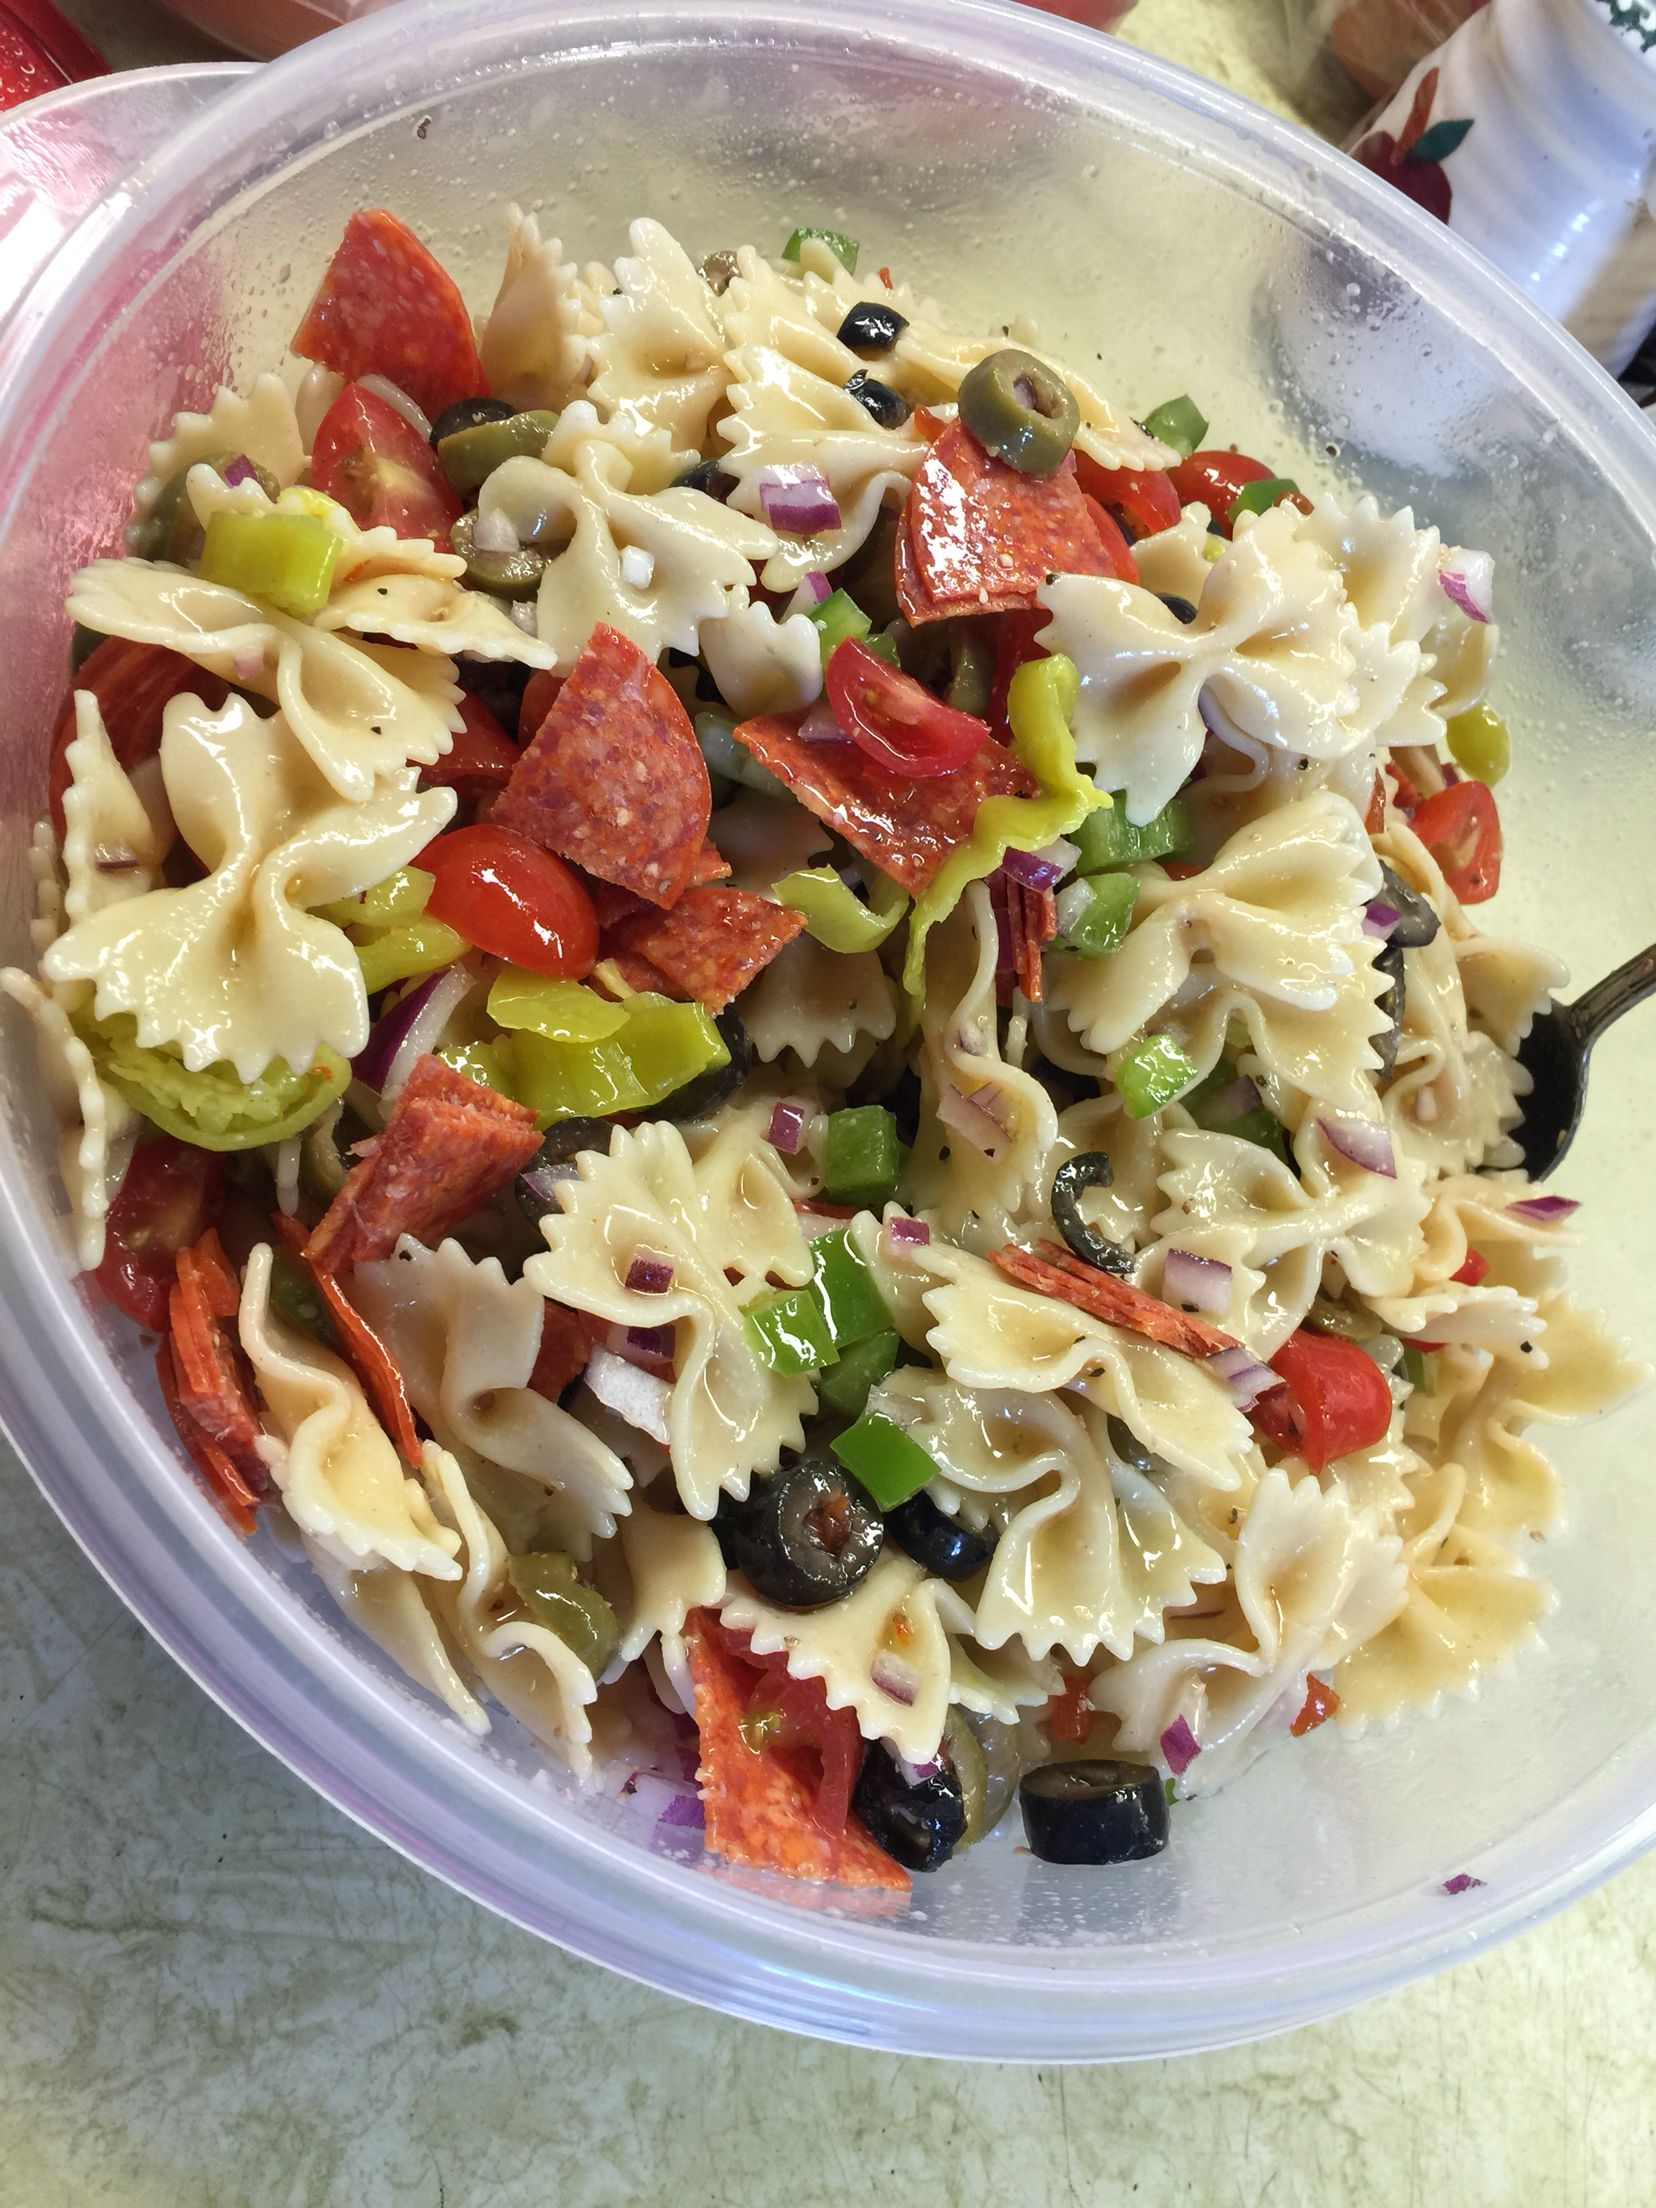 My Favorite Pasta Salad 1 2 Lb Bow Tie Pasta 1 2 Red Onion